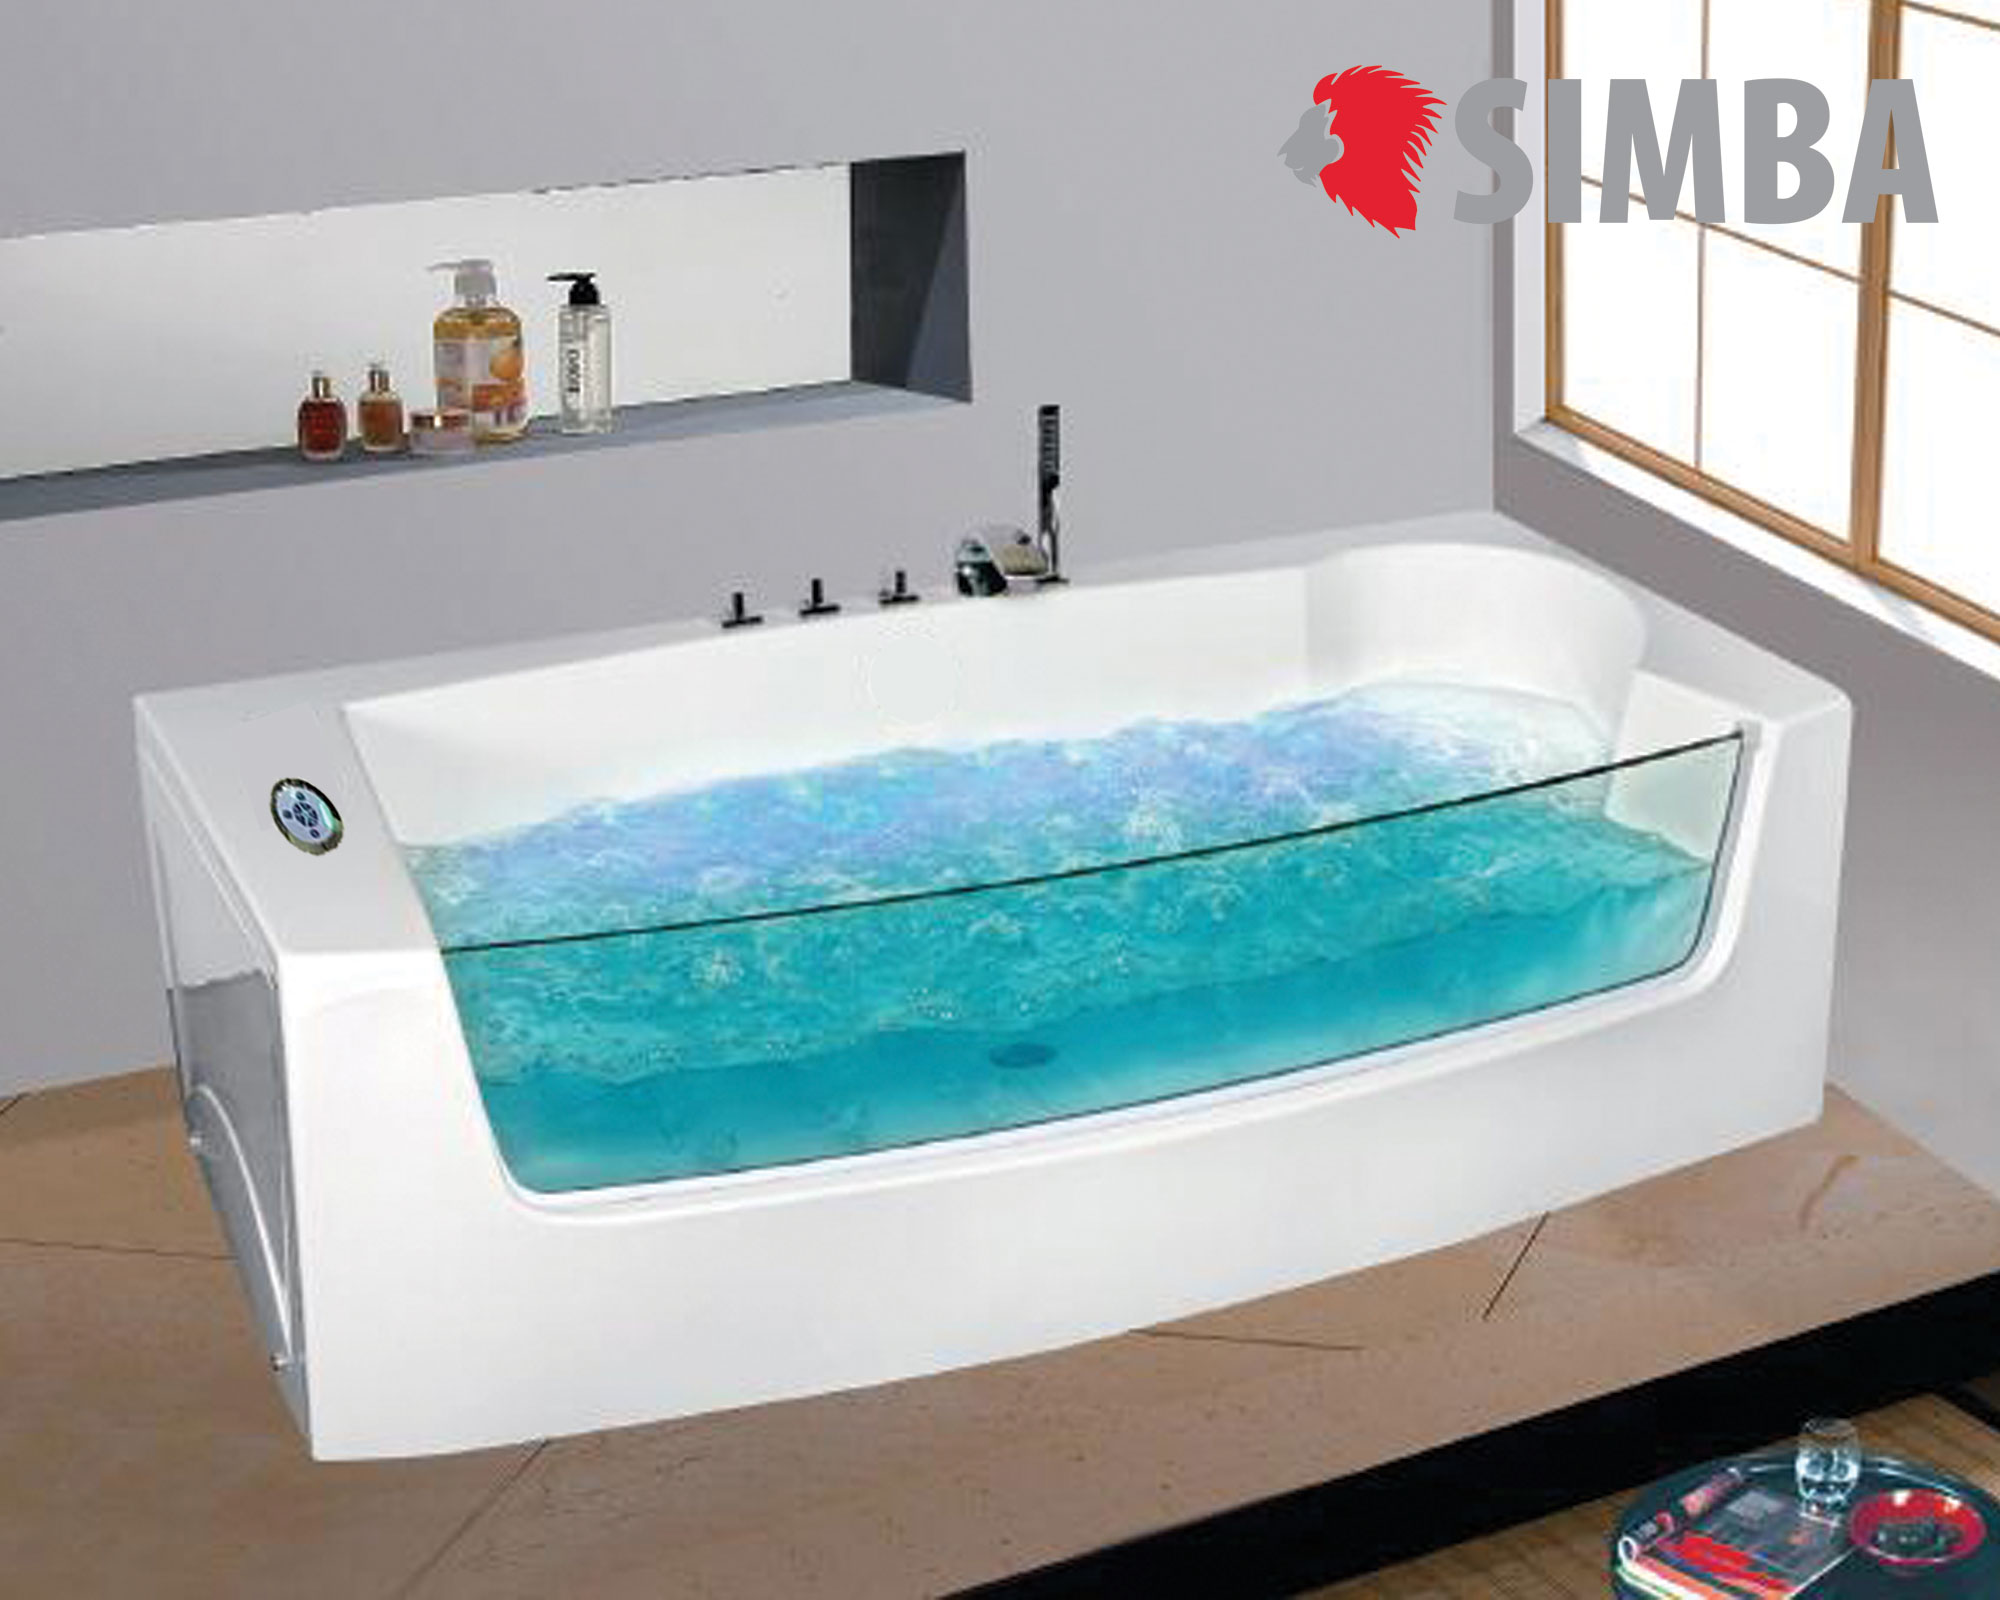 WHIRLPOOL BATH TUB SPA Dorado BATH TUB HOT TUB 180 x 90 cm BATHTUB ...